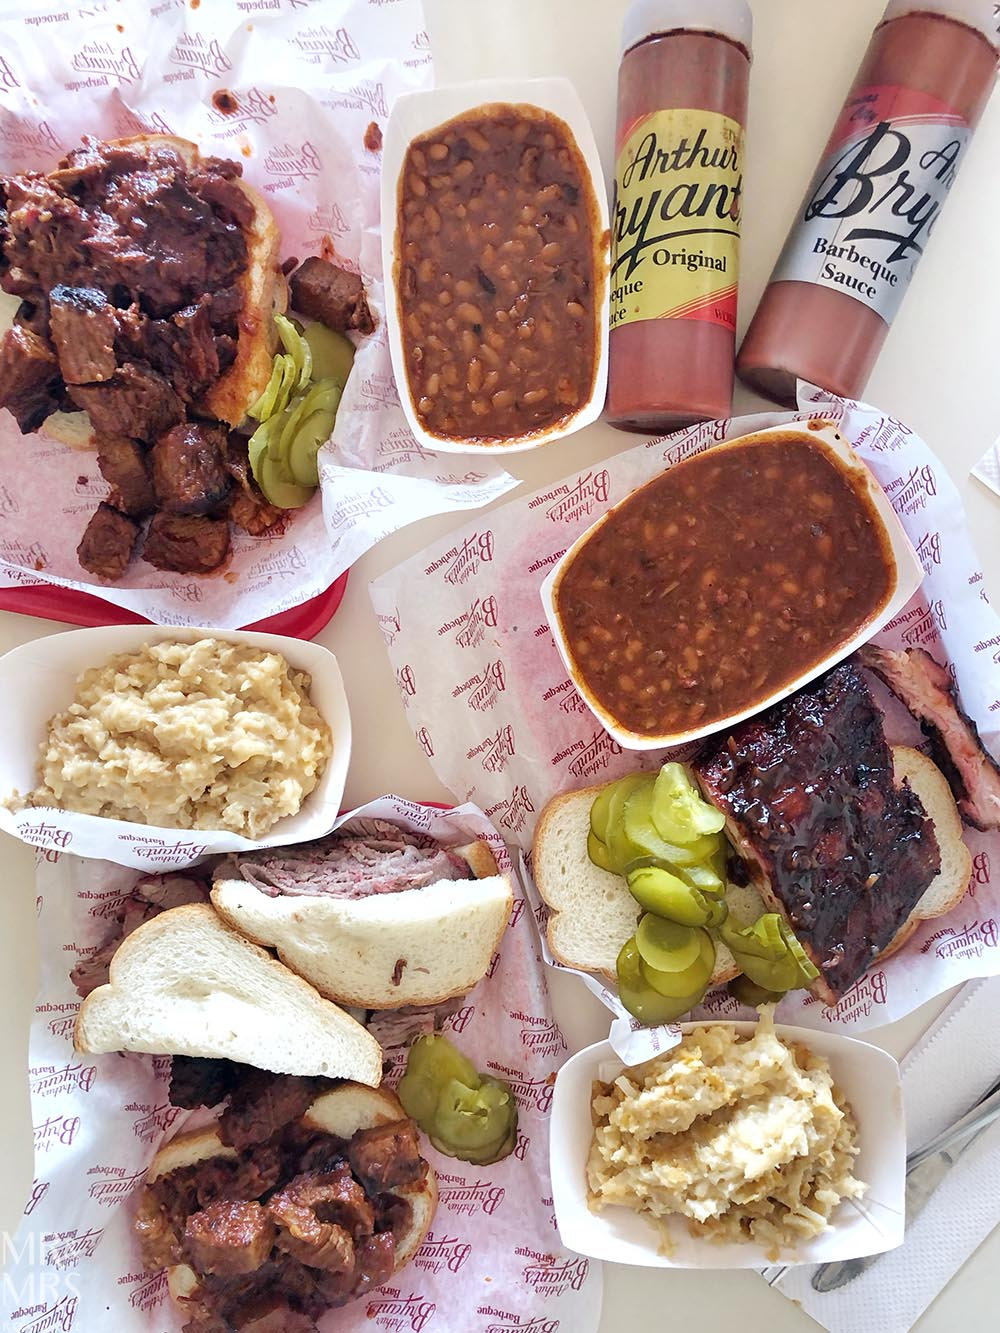 Kansas City BBQ - Arthur Bryant's Bar-B-Q